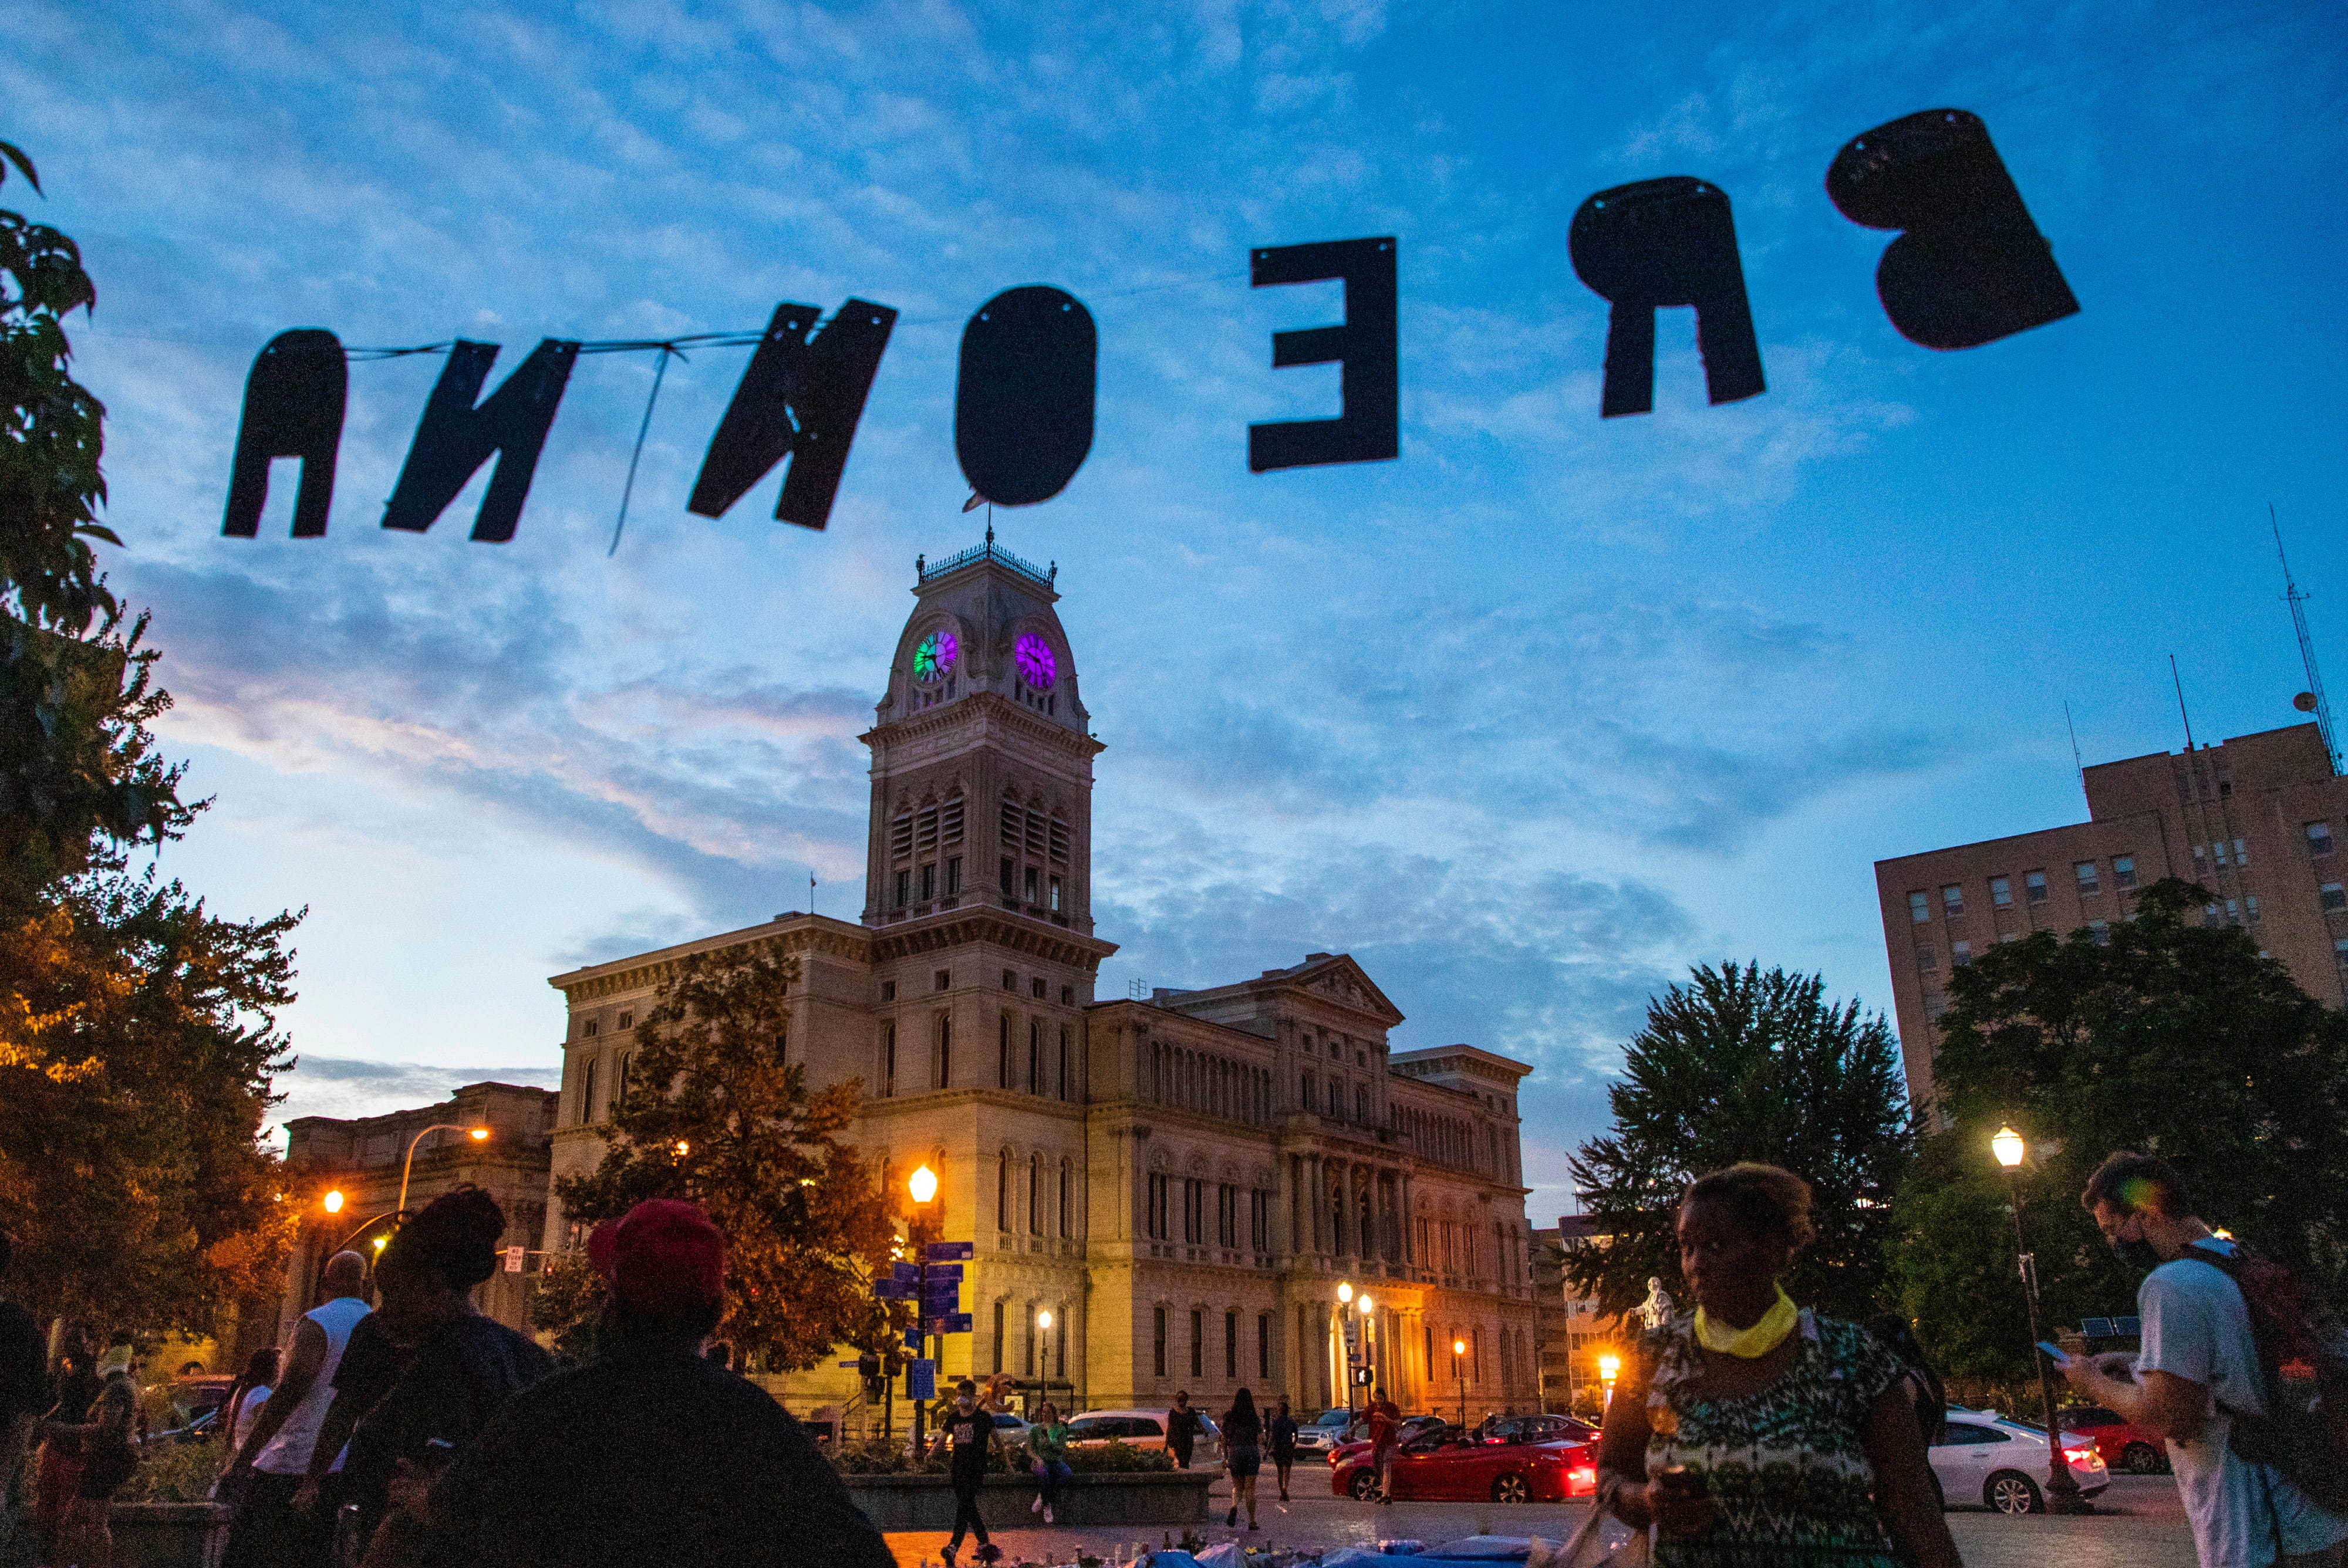 Letters spelling out Breonna hang up in Jefferson Square Park. July 9, 2020